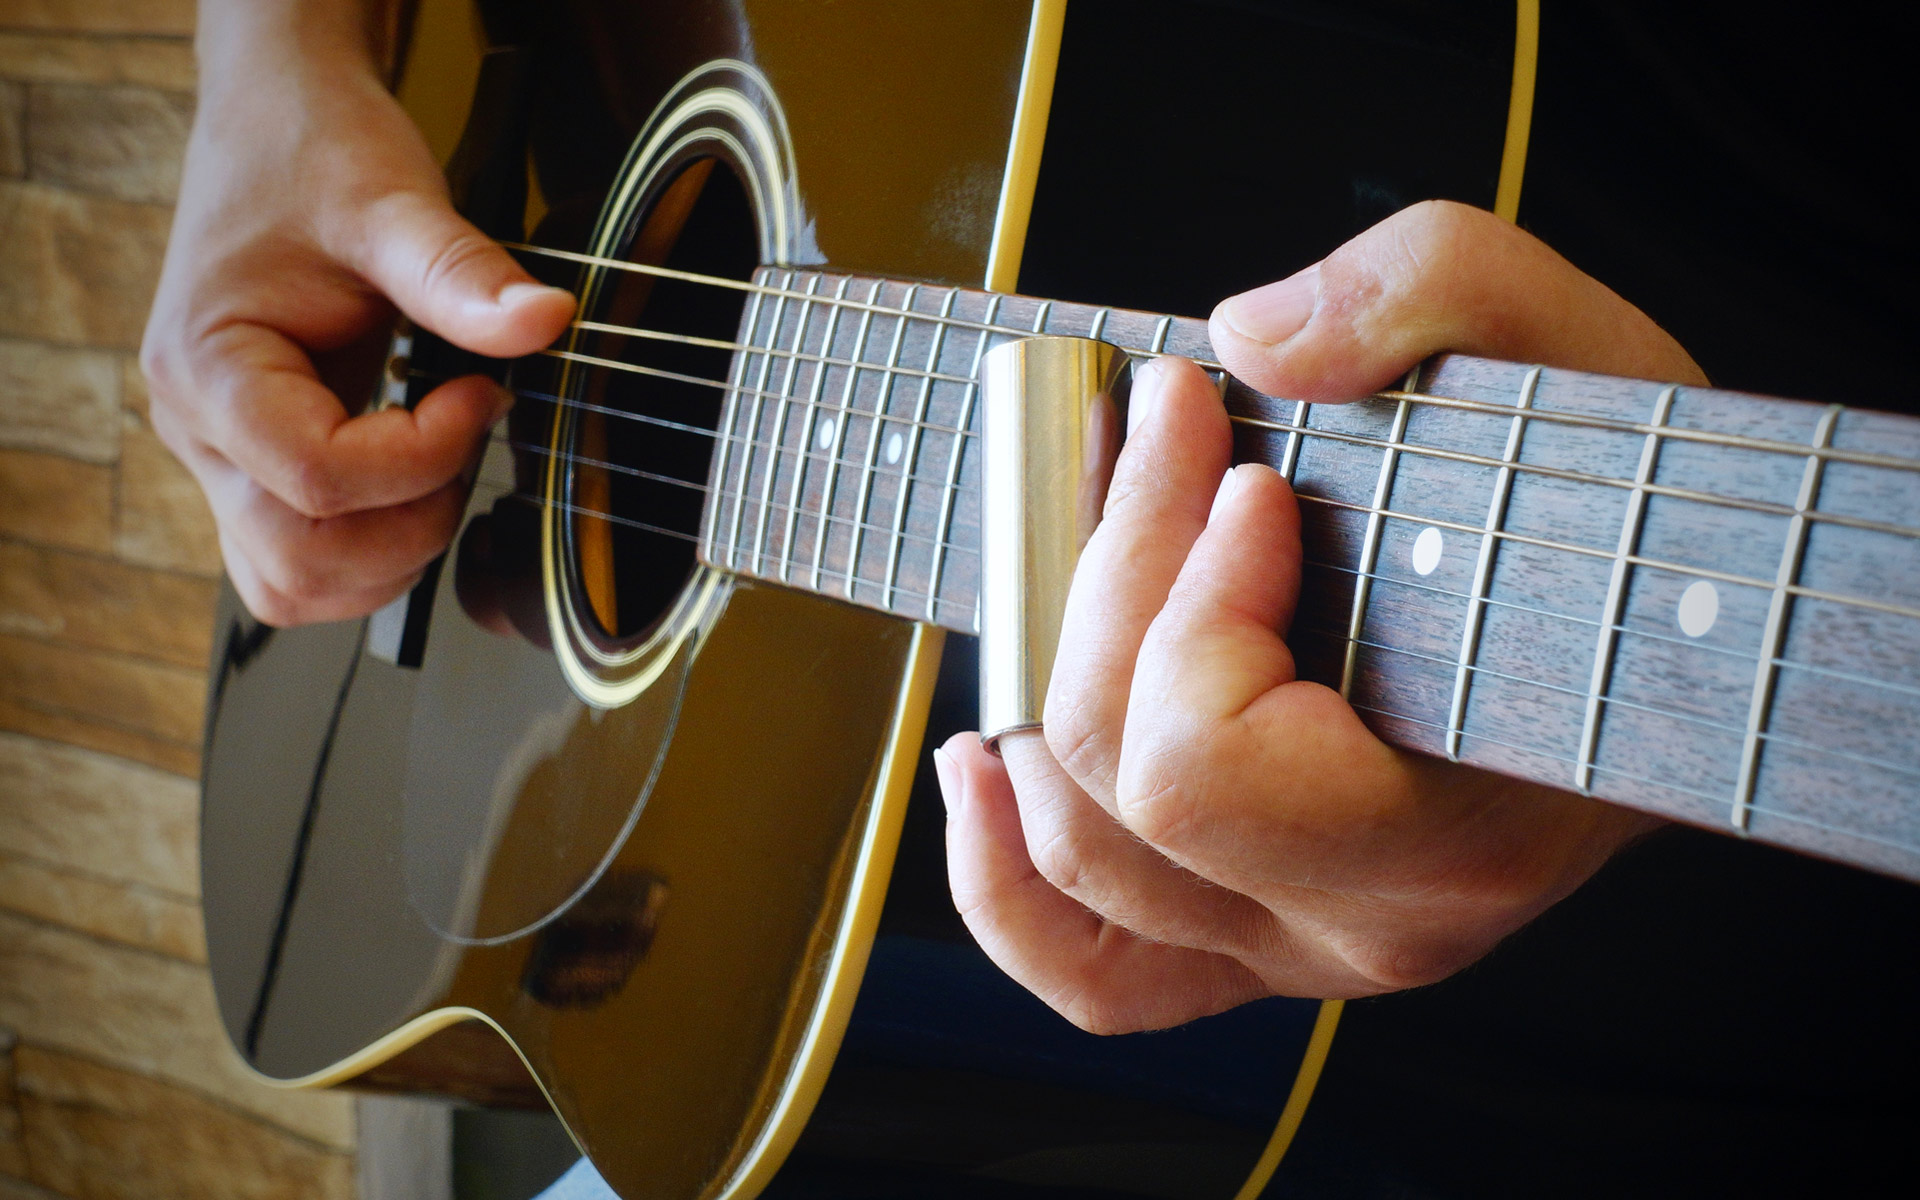 How to Easily Play the E Flat chord (Eb) on Guitar